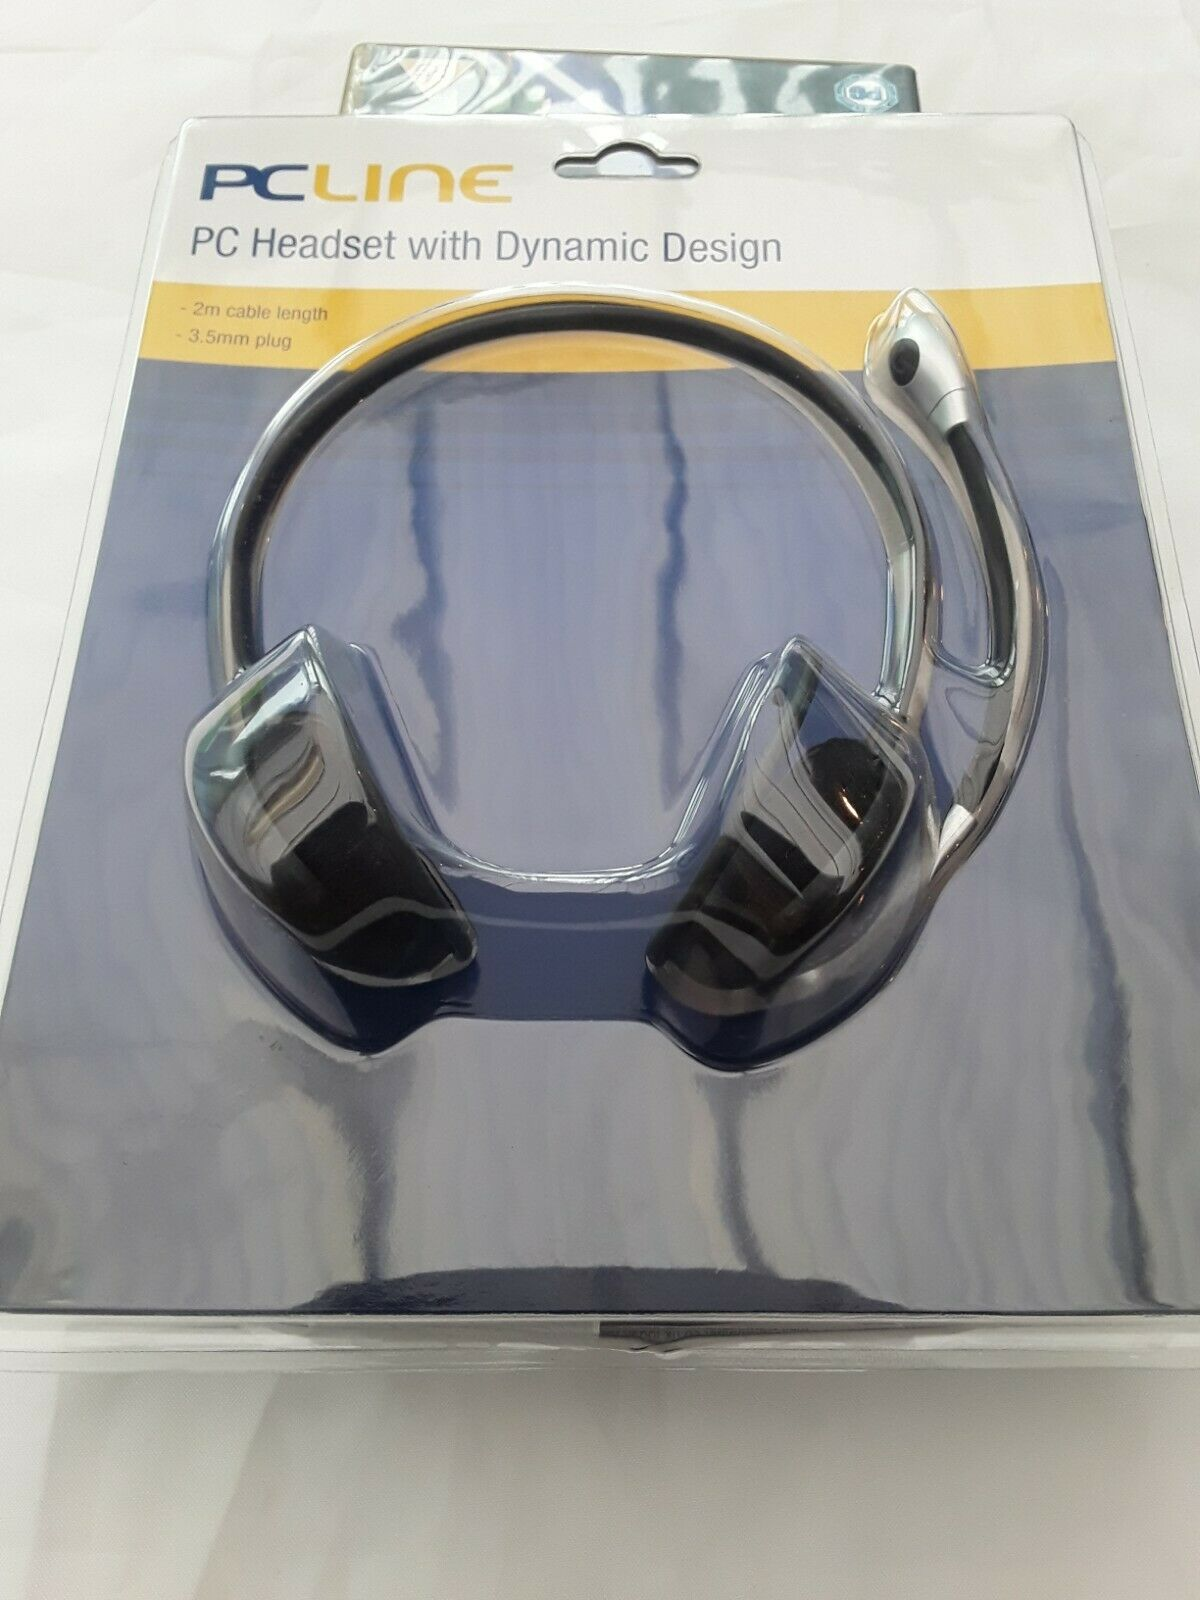 Pc Line Headset with mic 2m cable 3.5mm jack cheap a1 uk pc laptop brand new☆☆☆☆